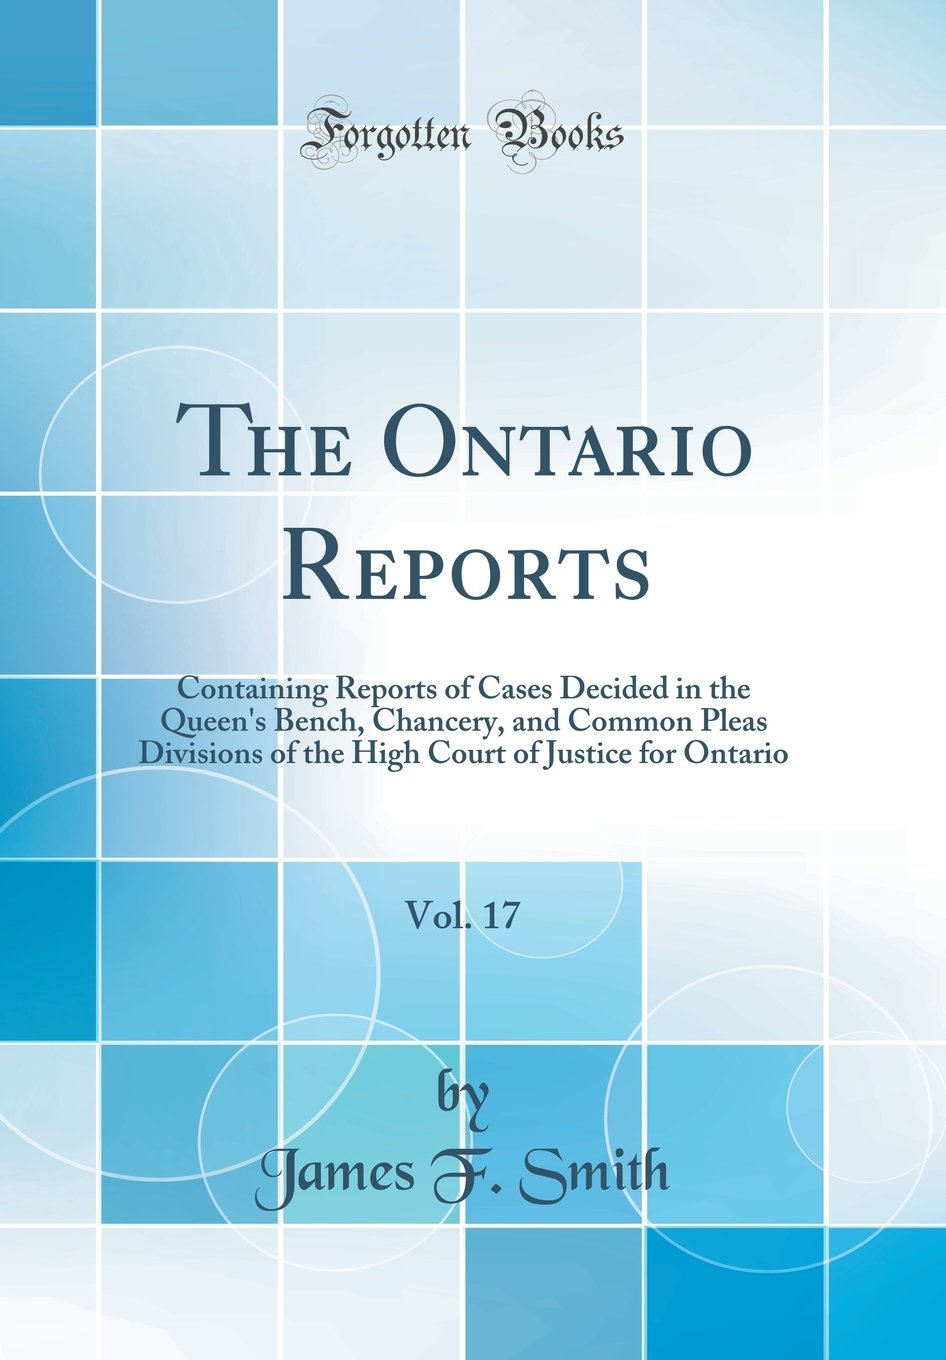 The Ontario Reports, Vol. 17: Containing Reports of Cases Decided in the Queen's Bench, Chancery, and Common Pleas Divisions of the High Court of Justice for Ontario (Classic Reprint) PDF